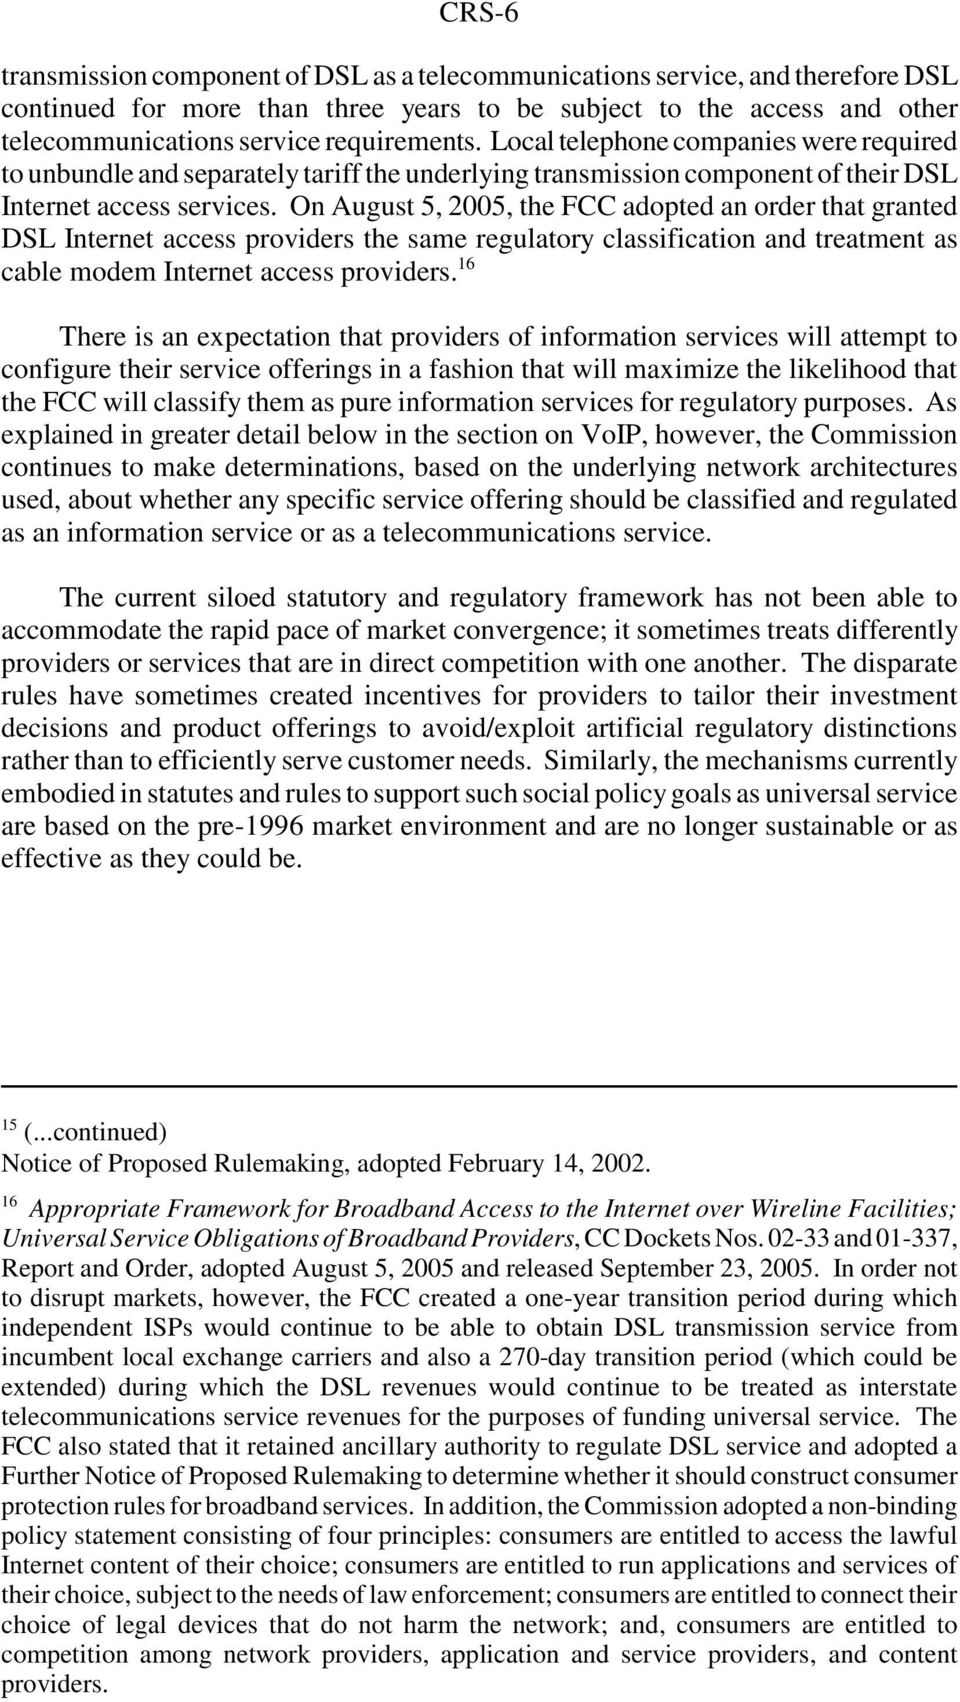 On August 5, 2005, the FCC adopted an order that granted DSL Internet access providers the same regulatory classification and treatment as cable modem Internet access providers.